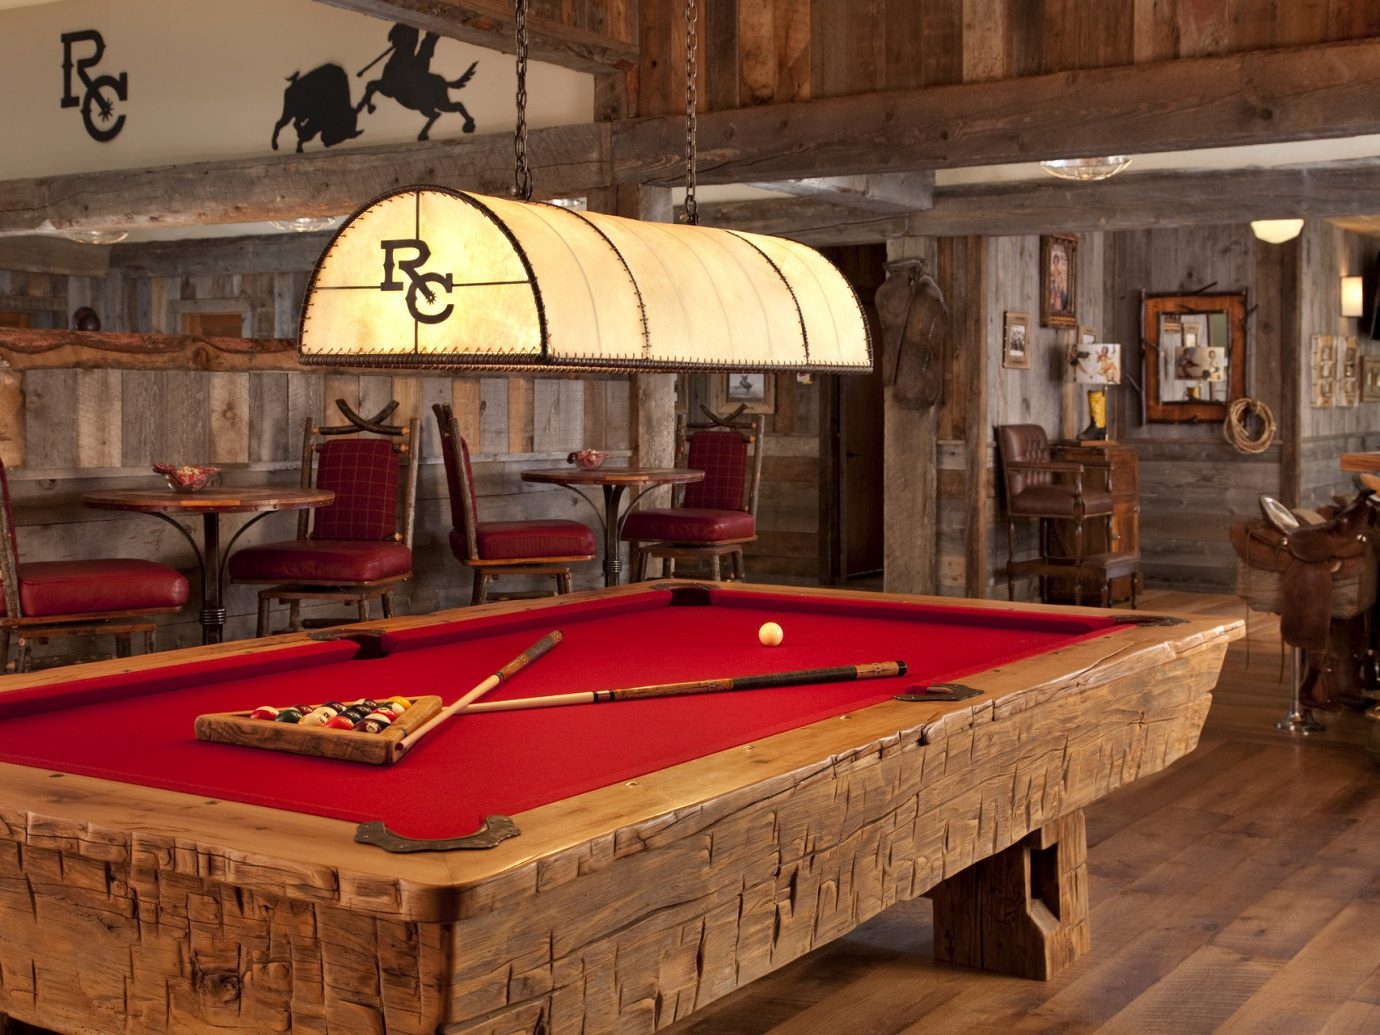 Glamping Hotels Montana Outdoors + Adventure Trip Ideas indoor billiard room recreation room floor room wooden billiard table furniture games wood estate table indoor games and sports cue sports